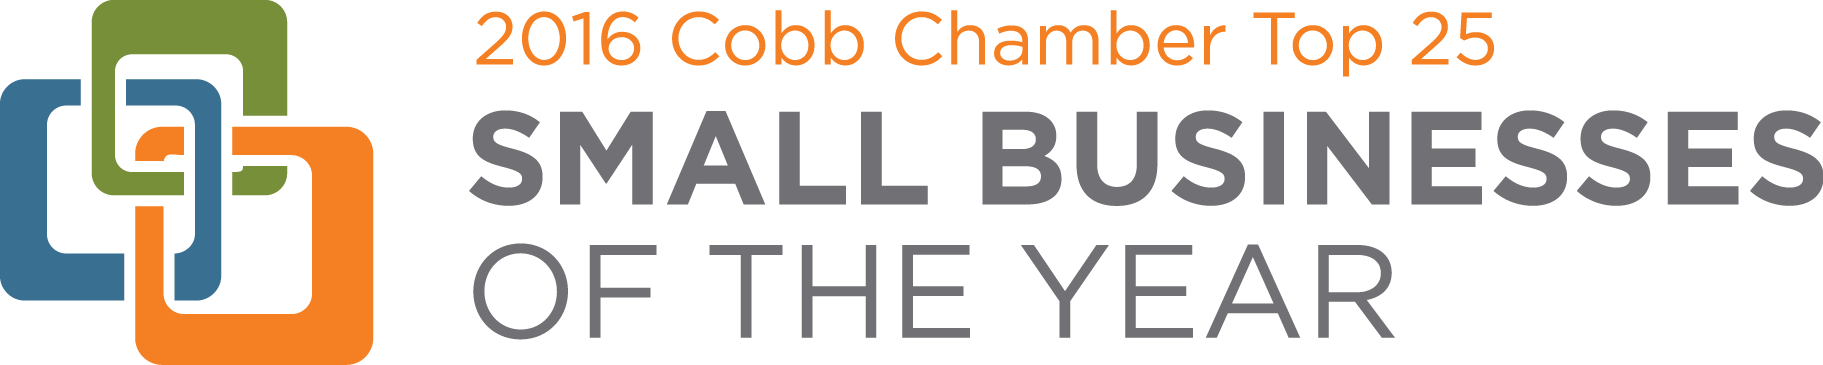 2016 Small Business of the Year Winner